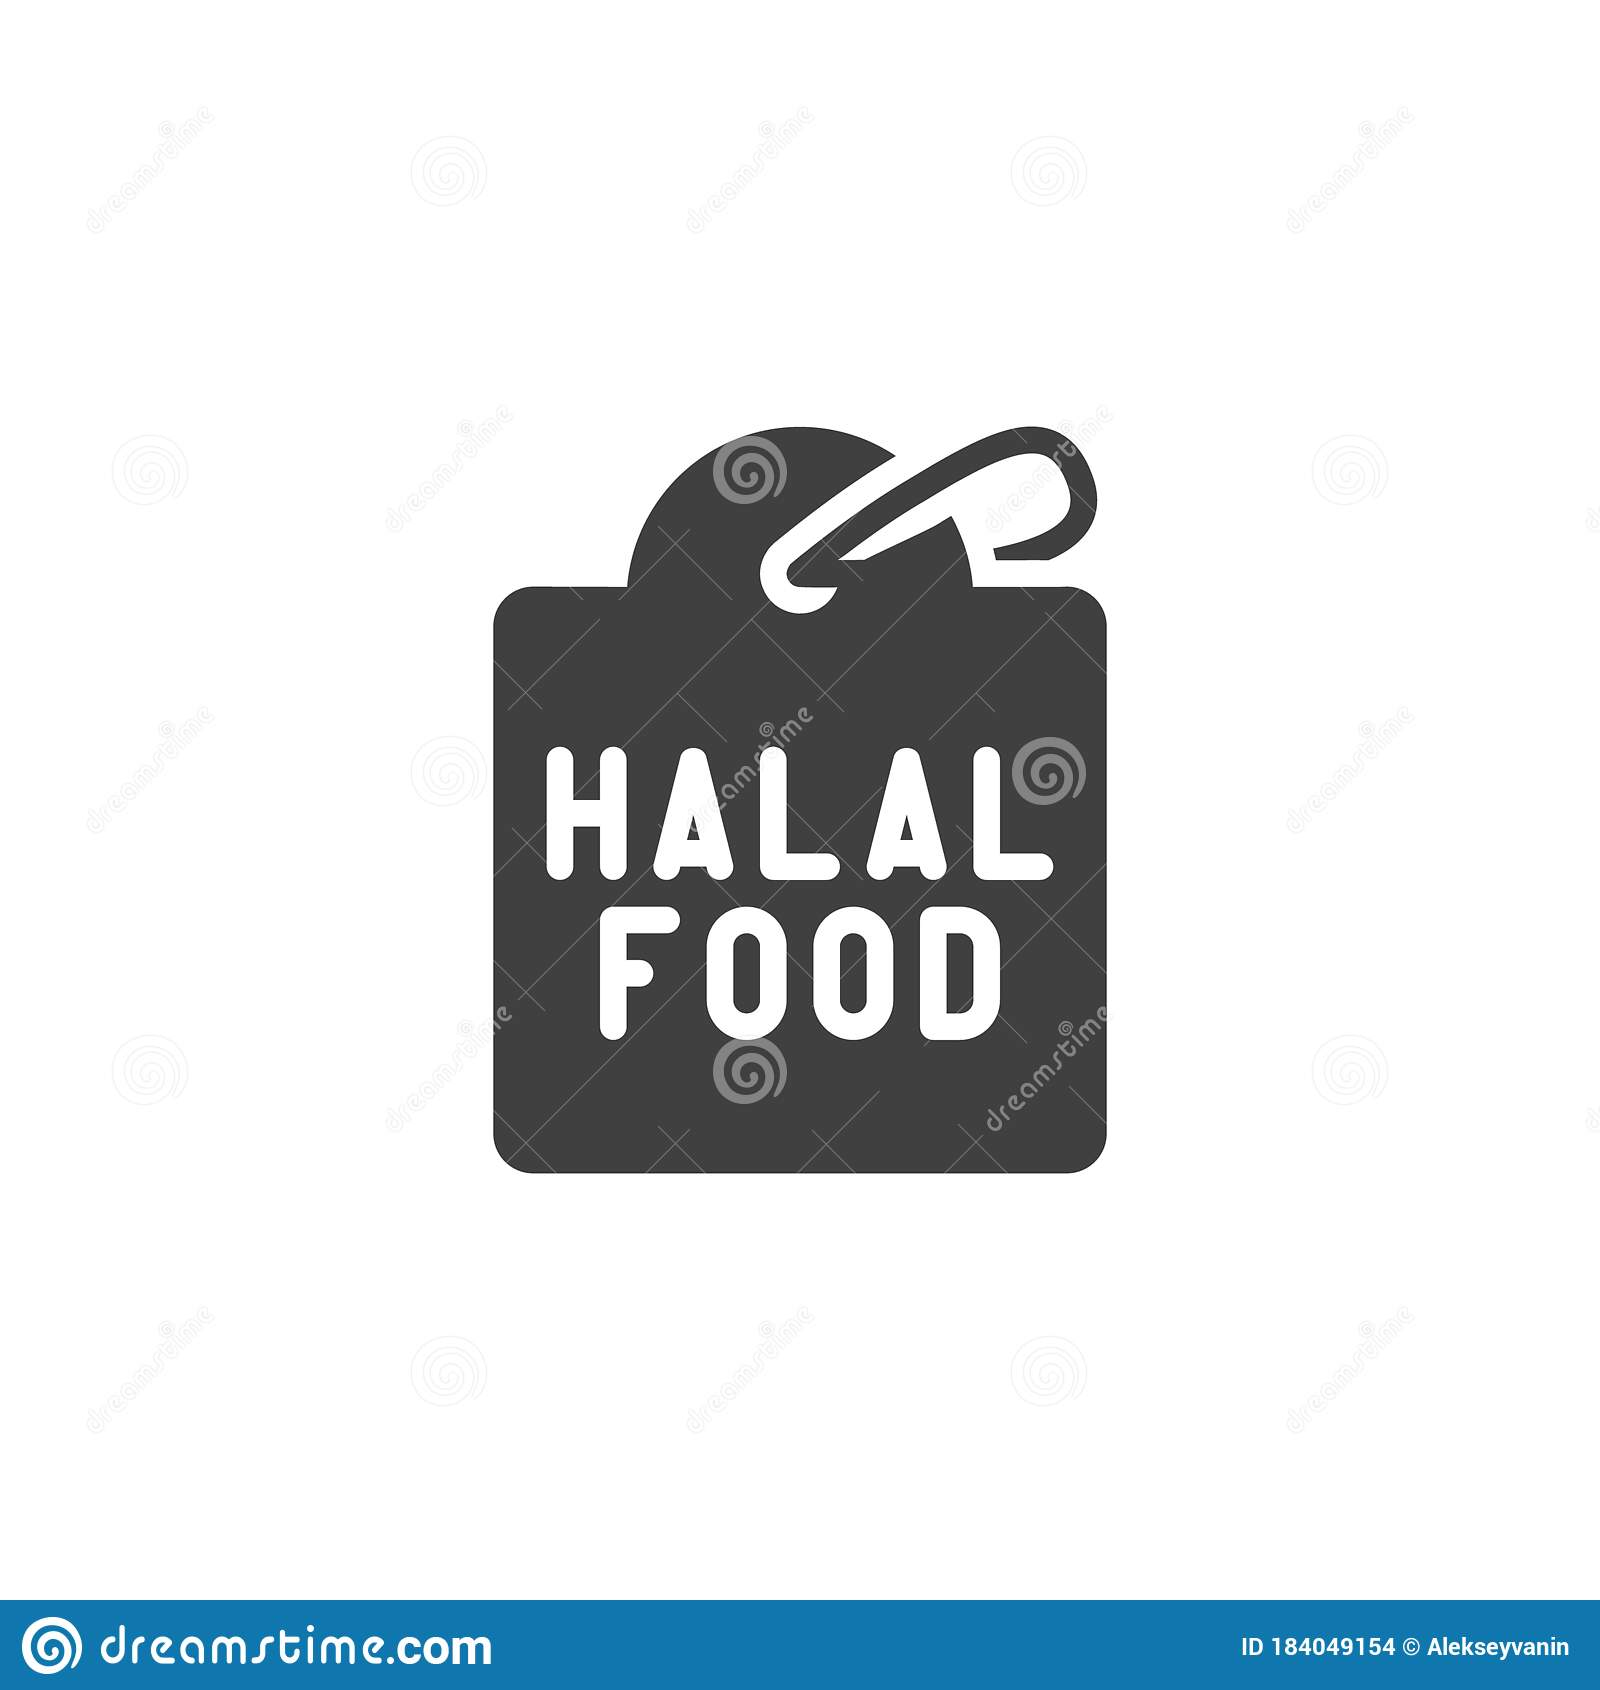 certified halal food tag vector icon stock vector illustration of perfect text 184049154 certified halal food tag vector icon stock vector illustration of perfect text 184049154